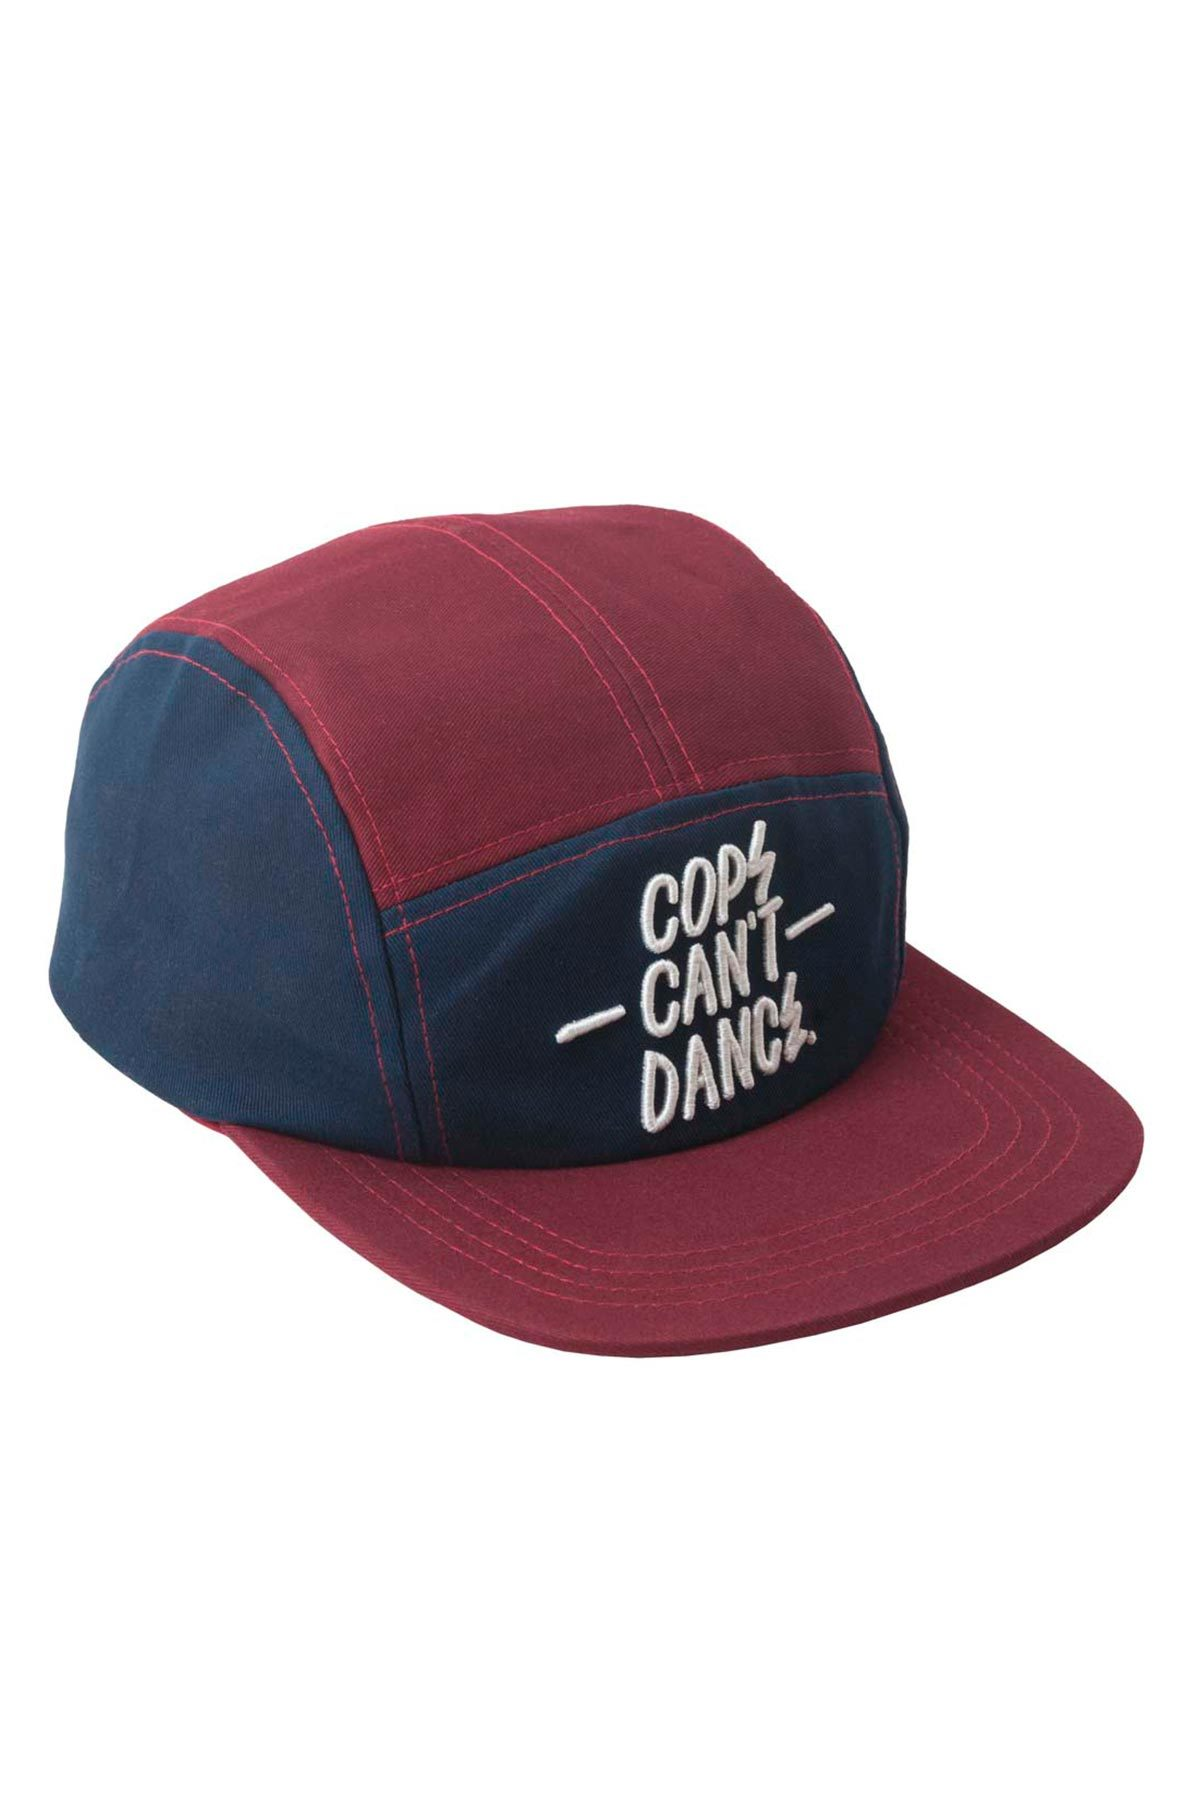 Mr. Serious COPS CAN'T DANCE cap